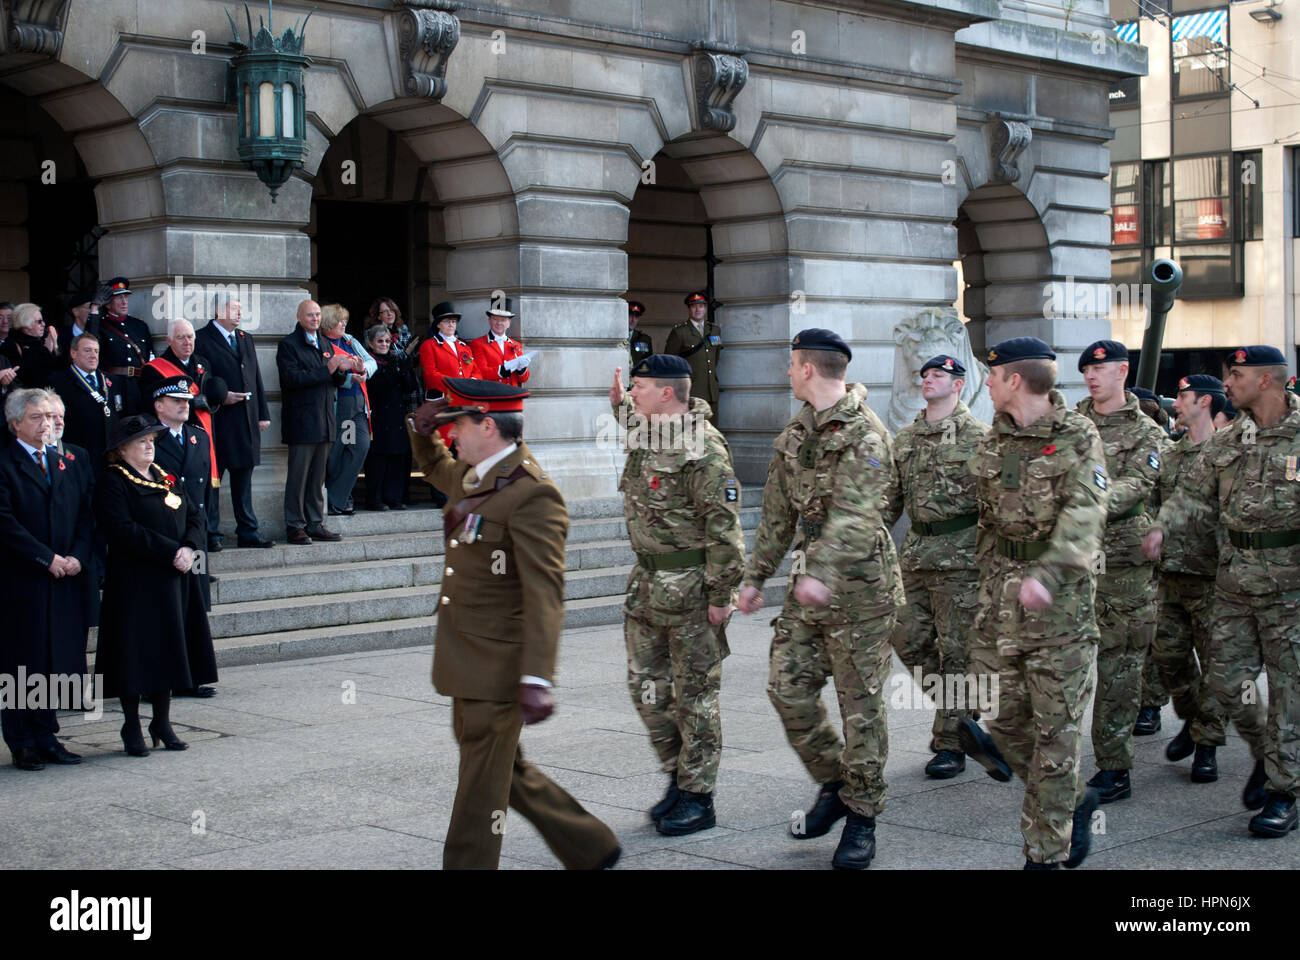 Soldiers marching past and saluting the mayor and other dignitaries outside the Nottingham Council House during - Stock Image